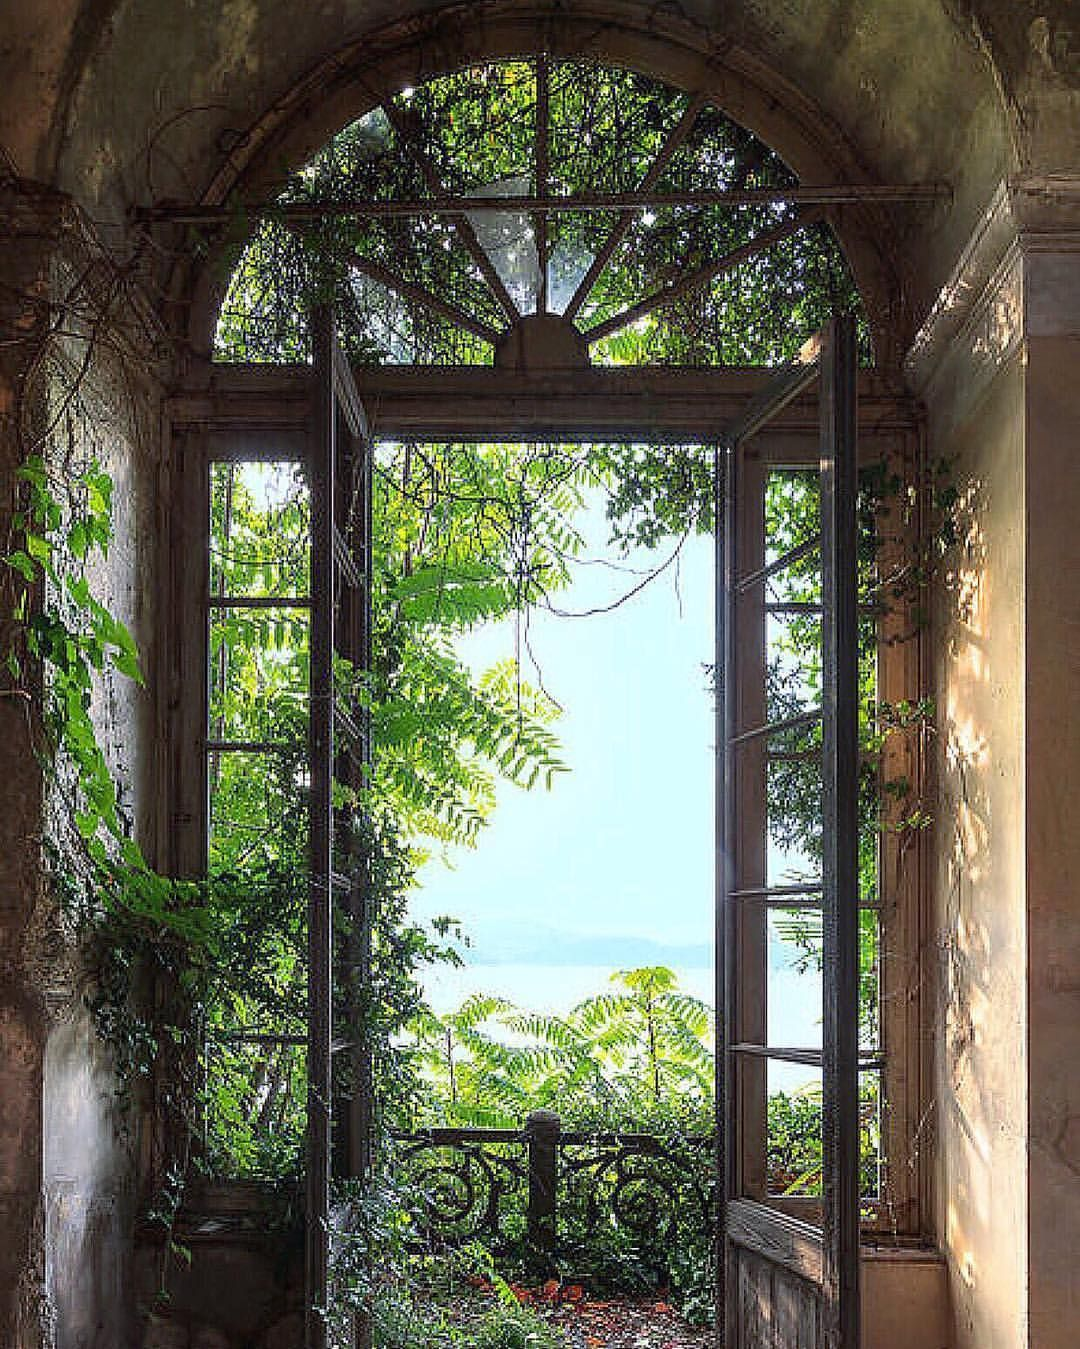 Open Window At Dusk: Pin By Elainetravels 1 On Flowers & Gardens In 2019